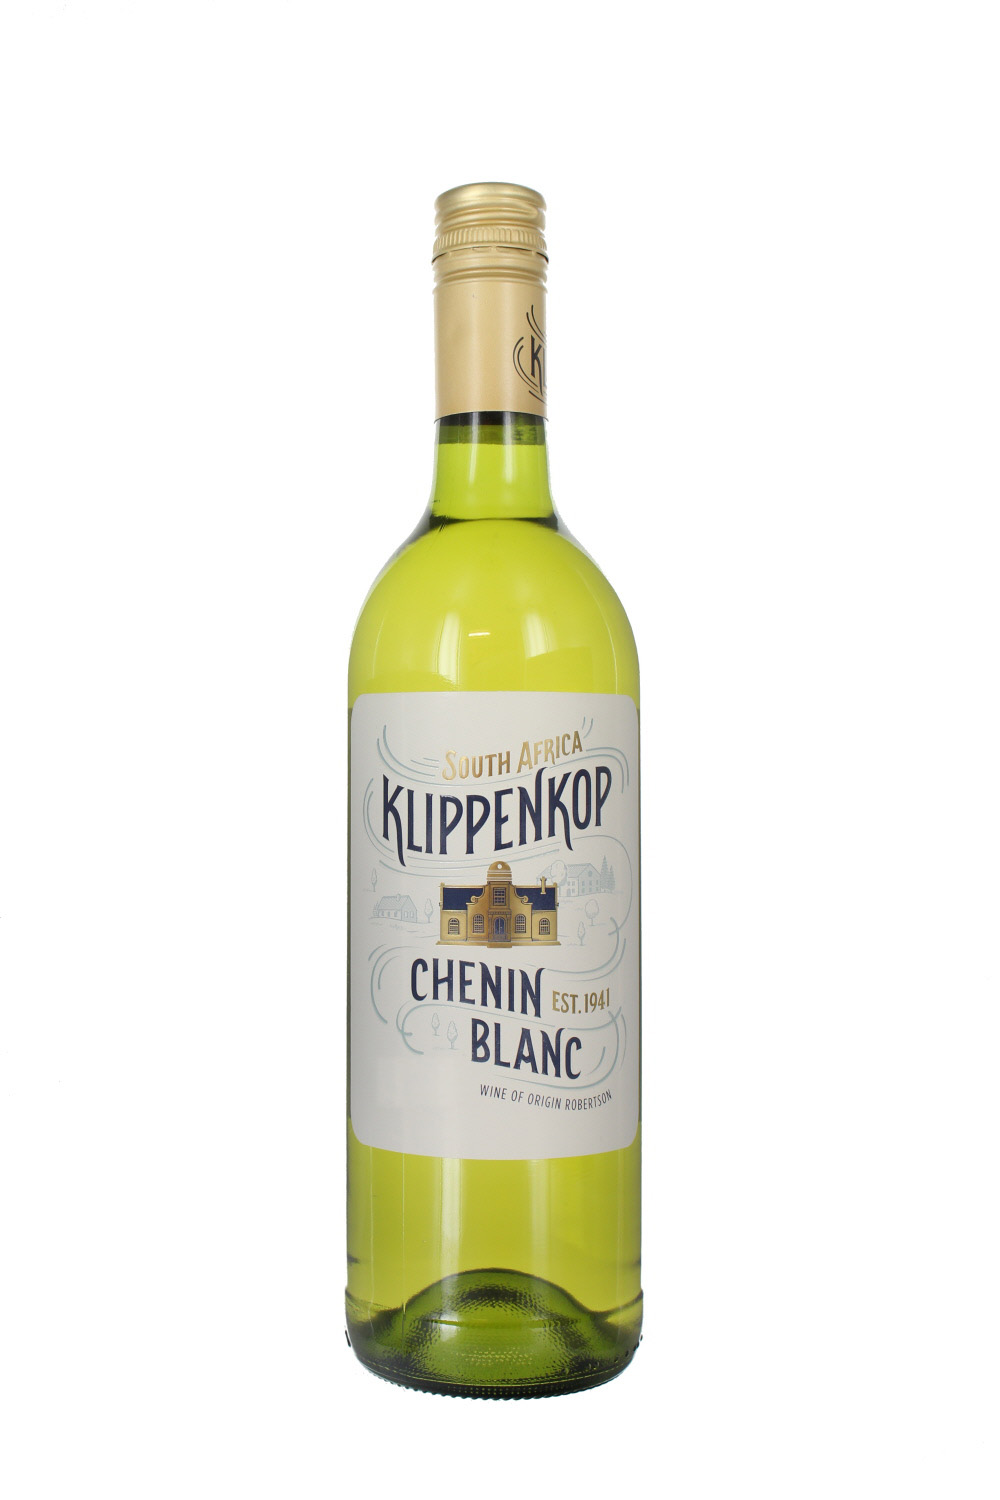 2018 Klippenkop Chenin Blanc, Robertson, South Africa (Case)